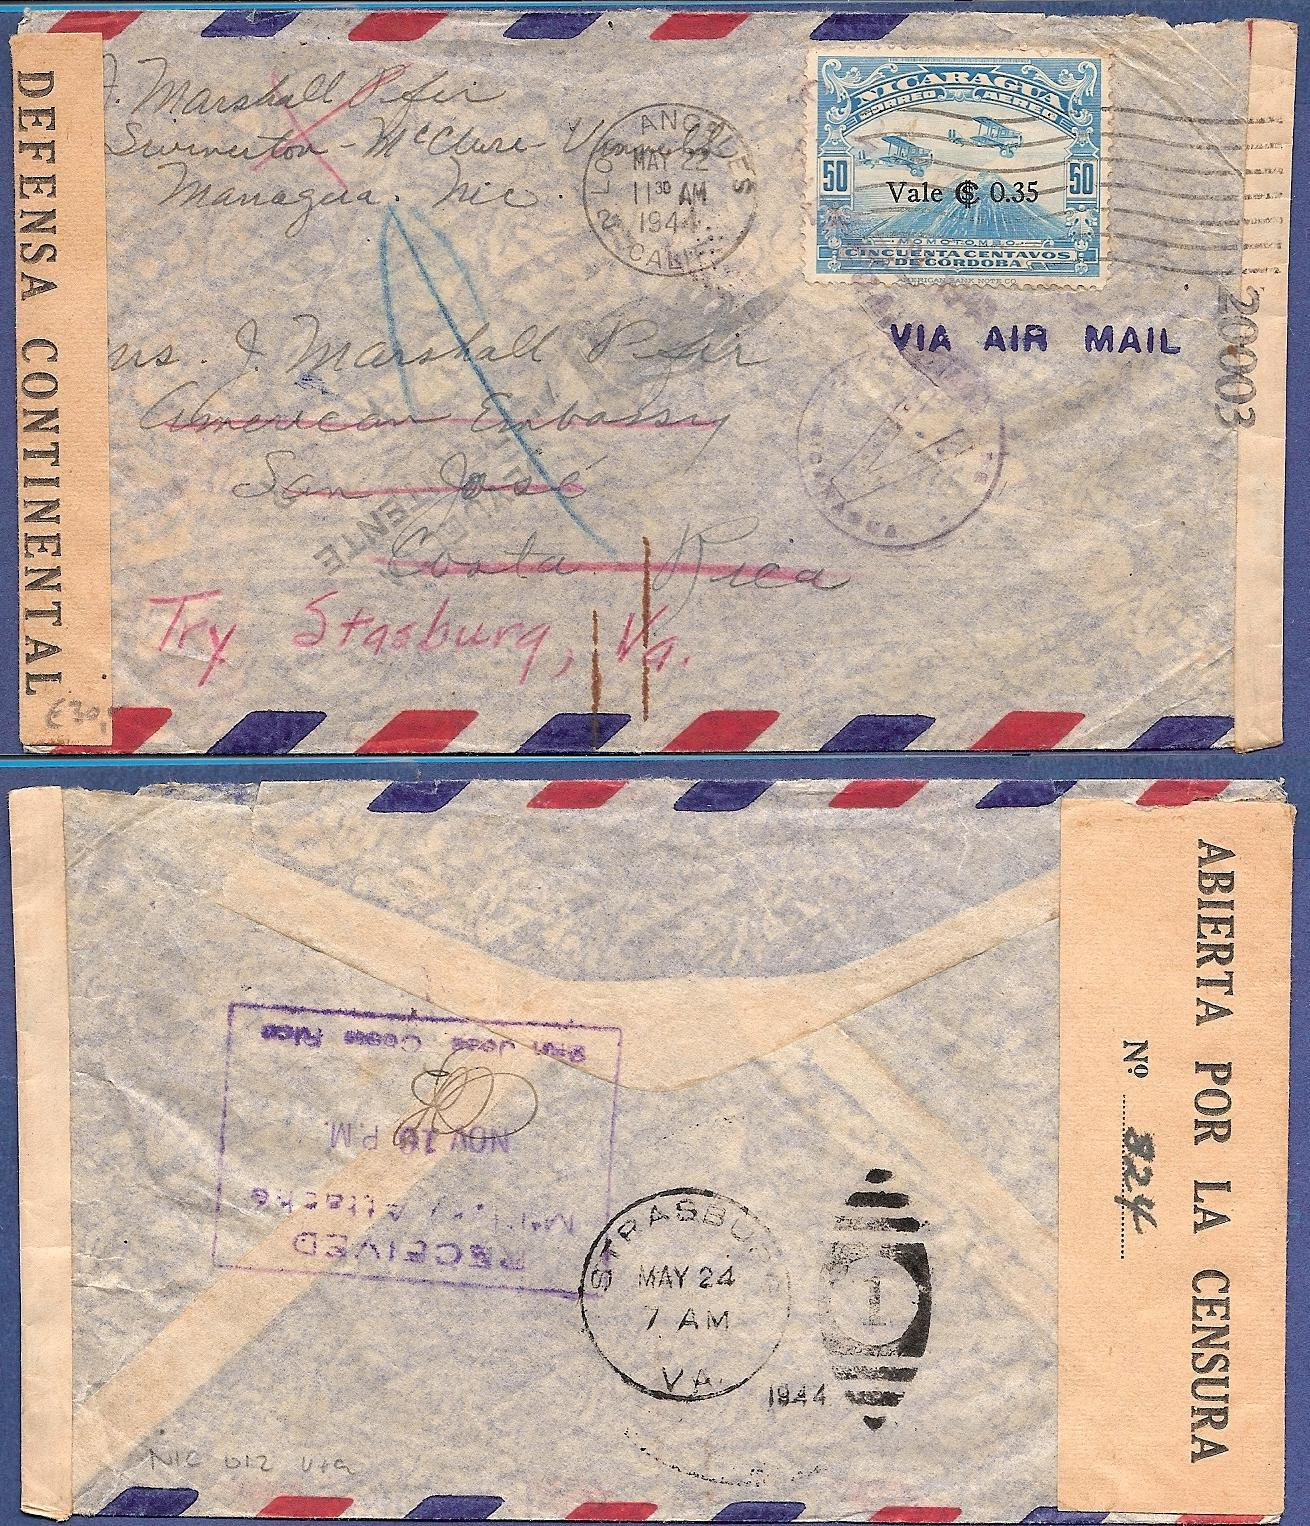 NICARAGUA censored air cover 1944 Managua to US Embassy in Costa Rica NIC012